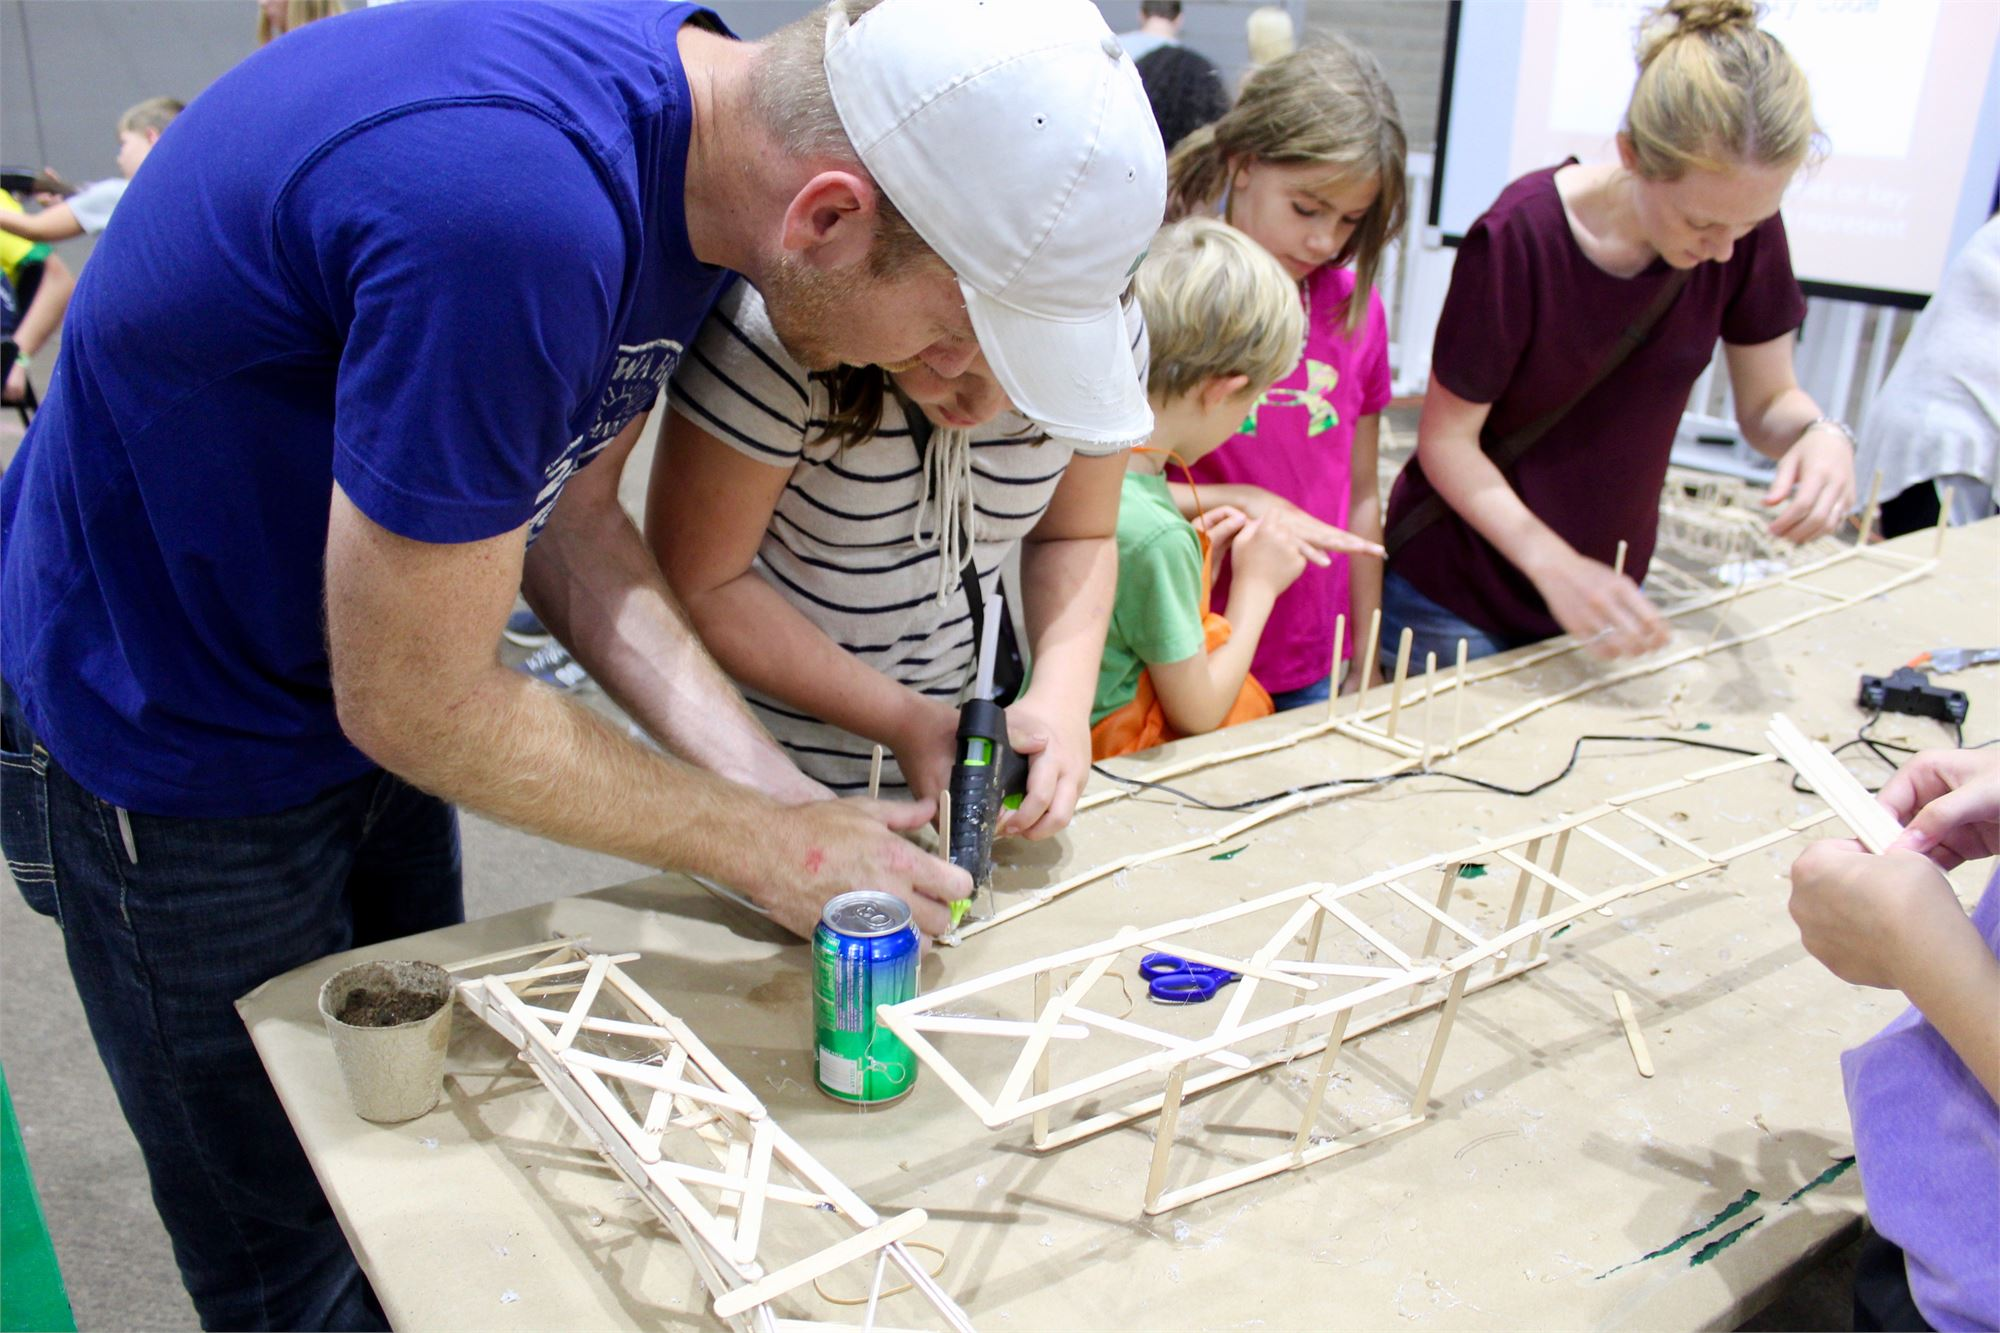 People building with popsicle sticks